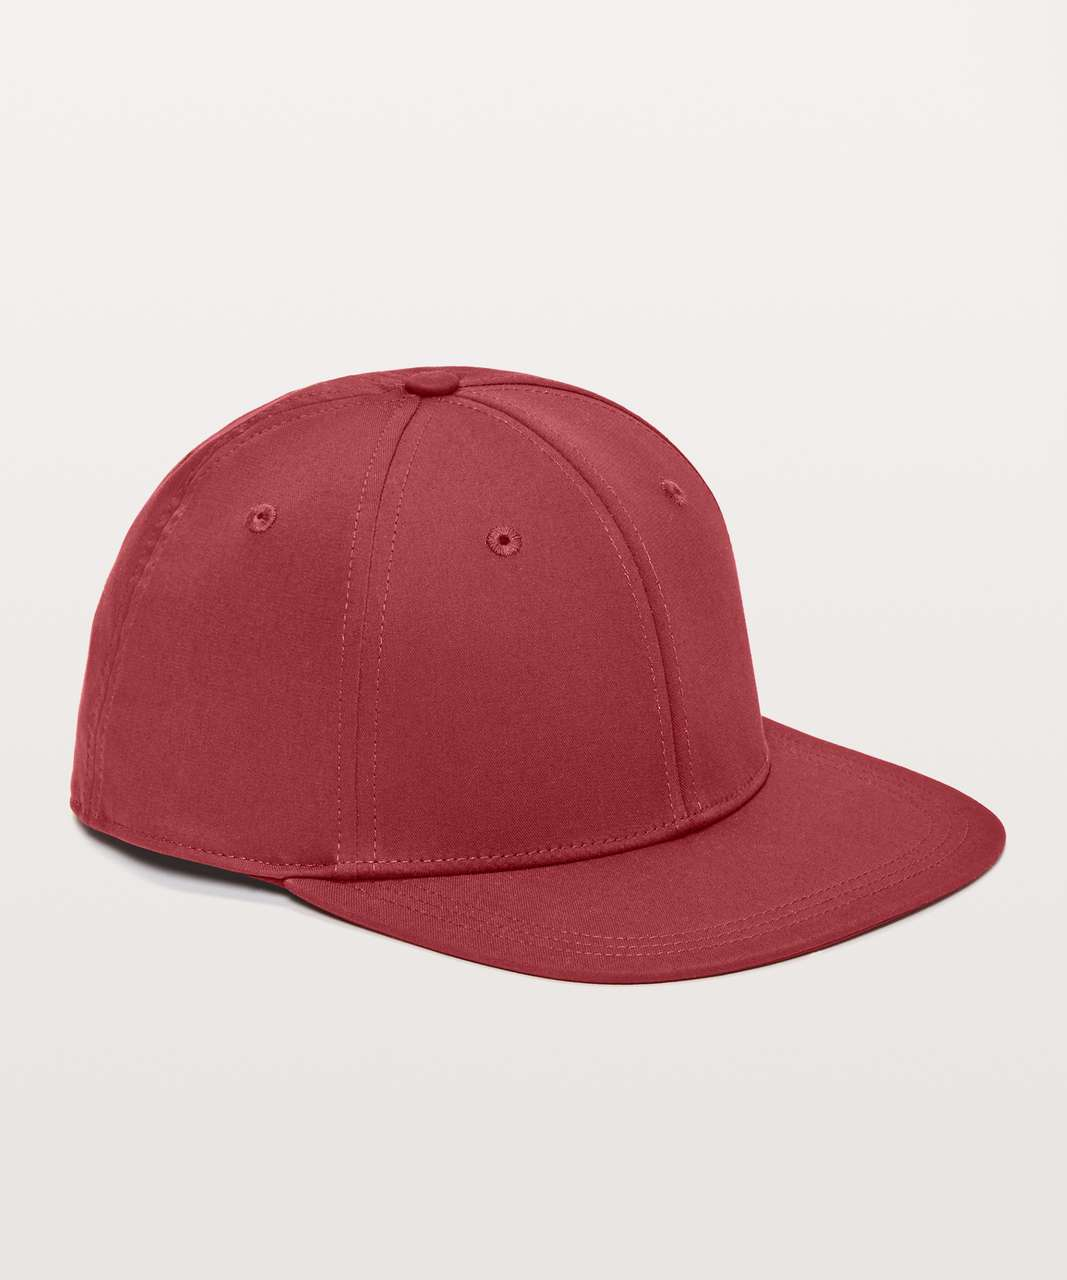 Lululemon On The Fly Ball Cap - Oxblood